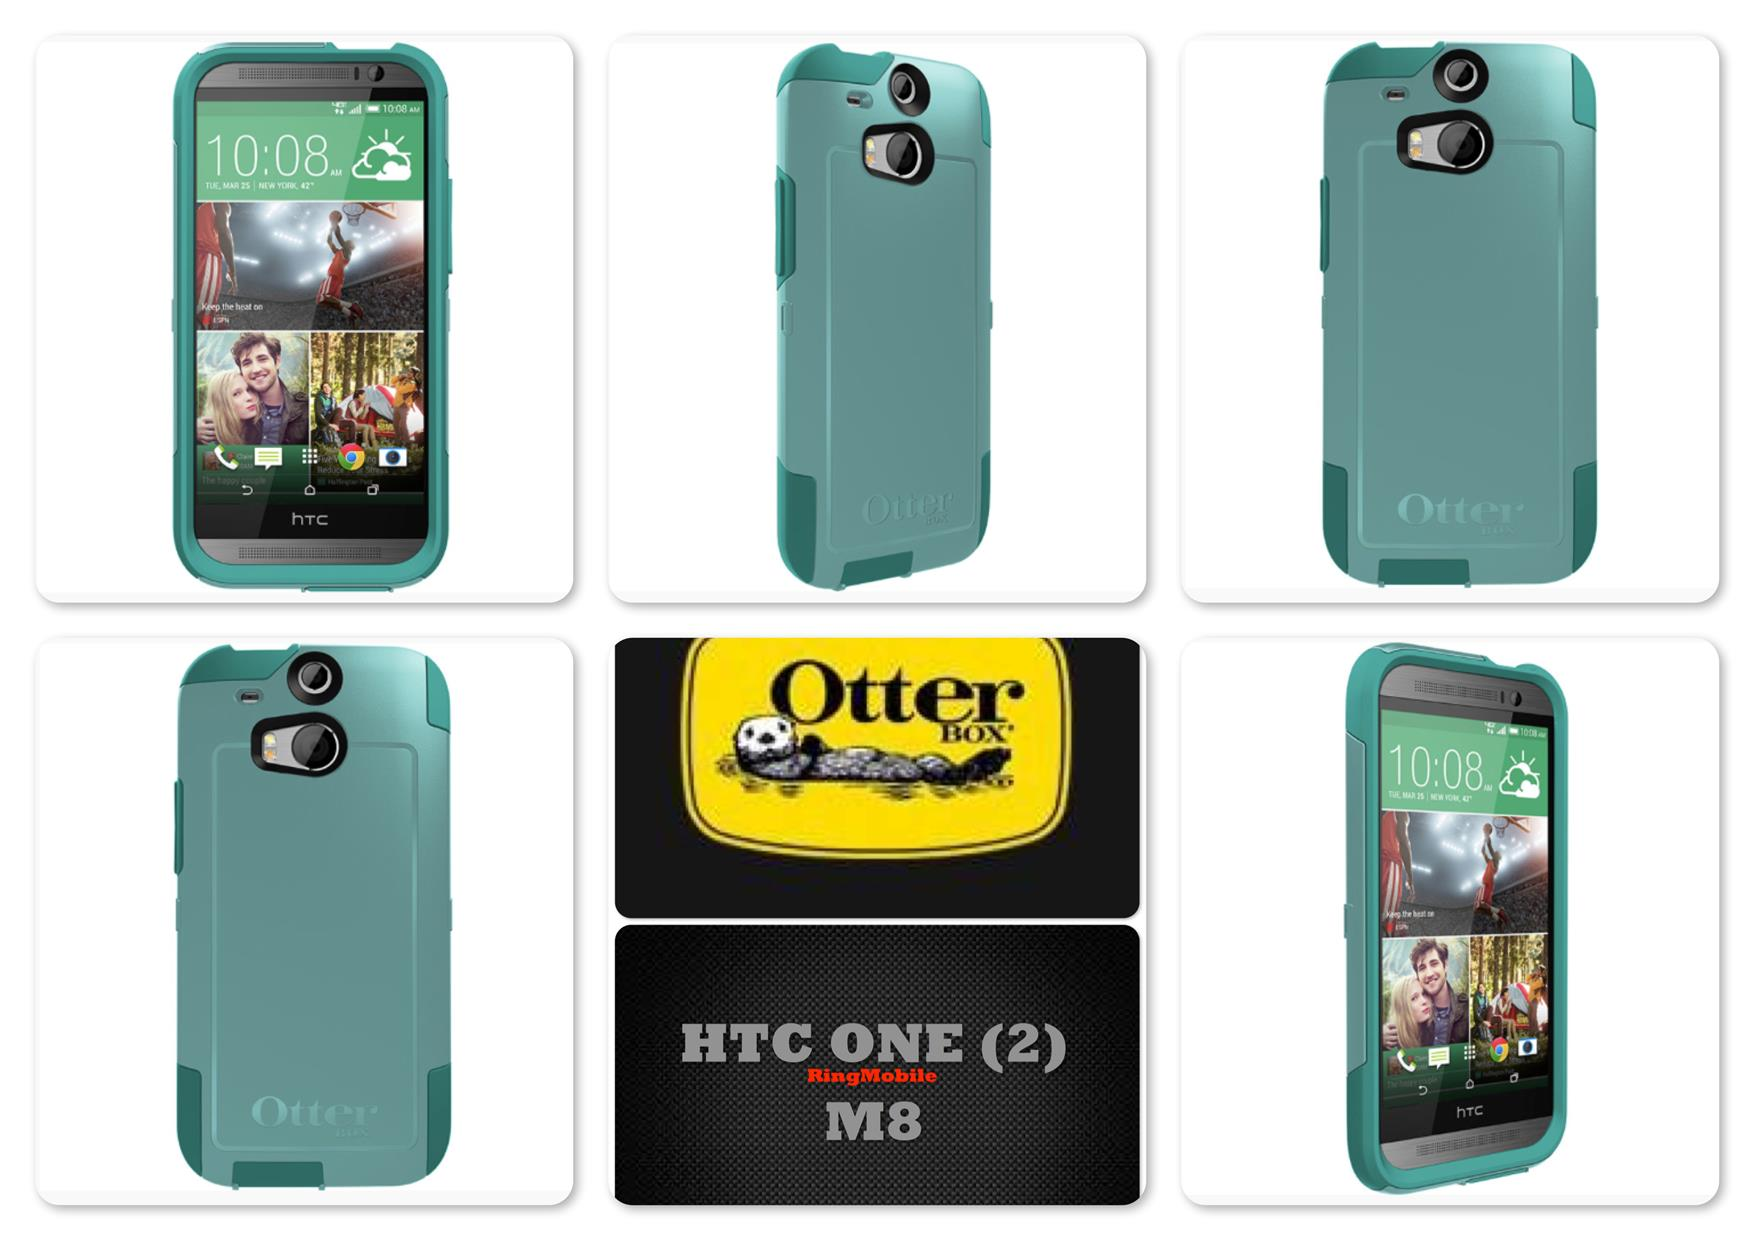 Bdotcom = HTC One M8 Otterbox Commuter Series @ Aqua Sky